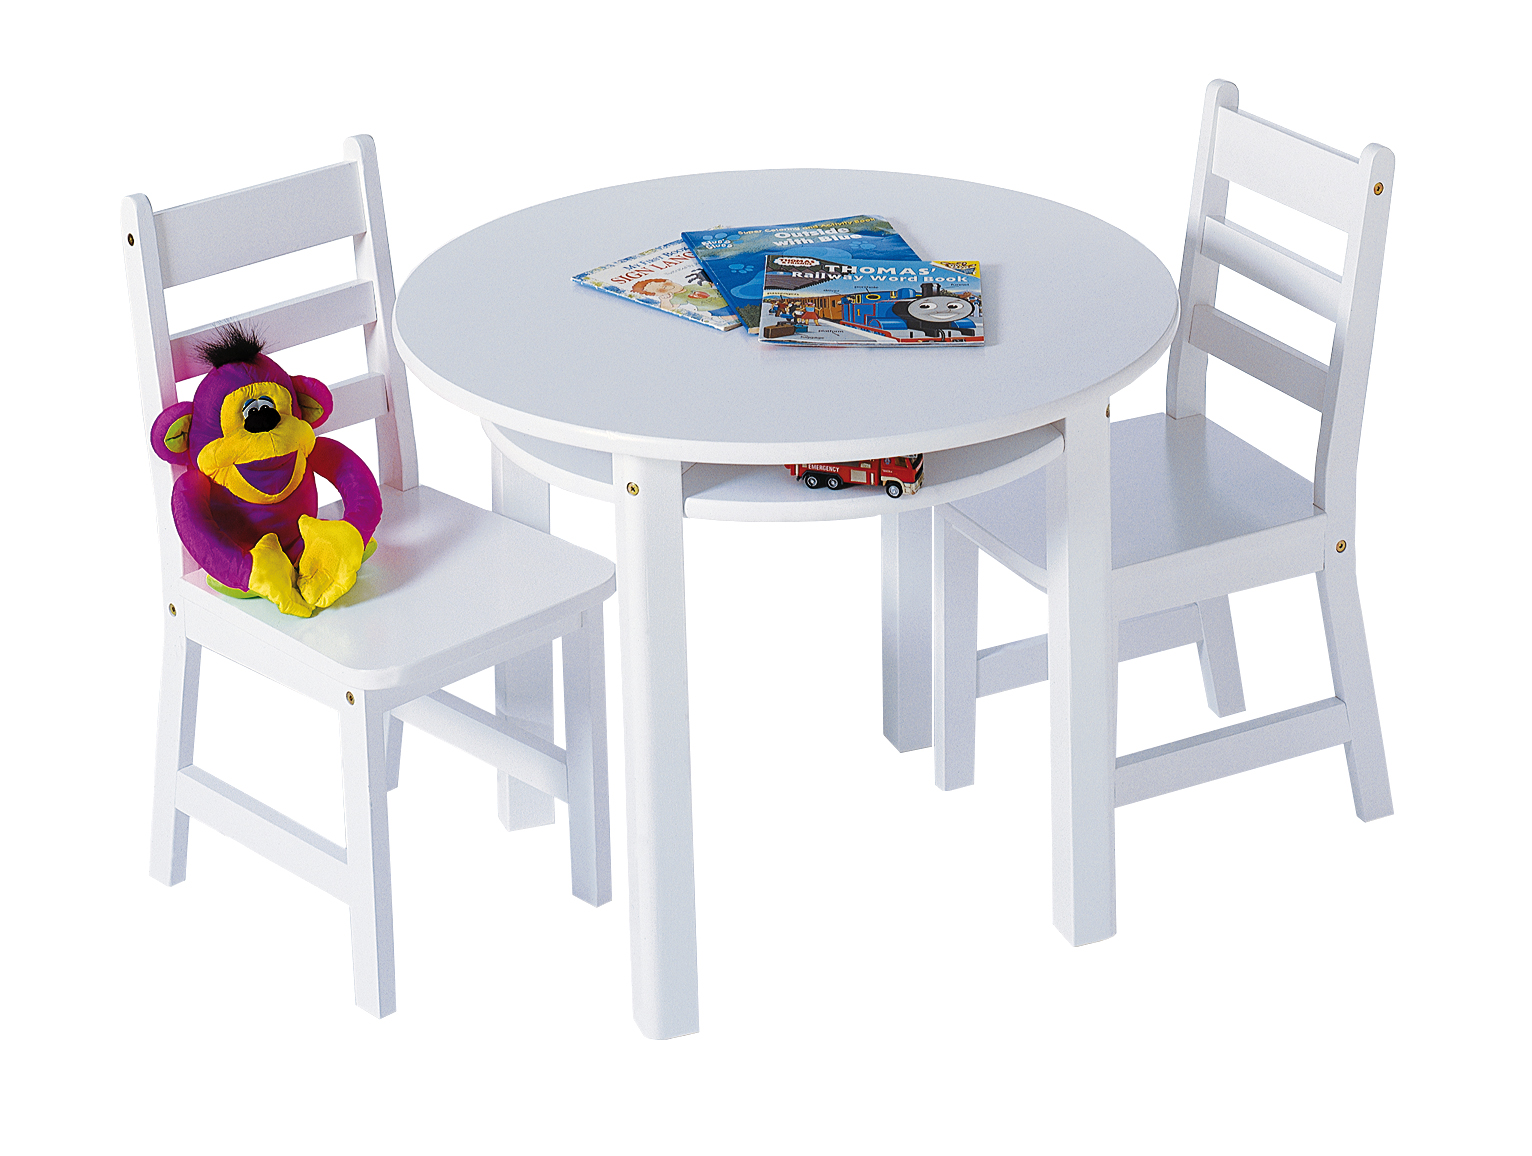 Childu0027s Round Table With Shelf U0026 2 Chairs, White | Lipper International  Table U0026 Chair Sets